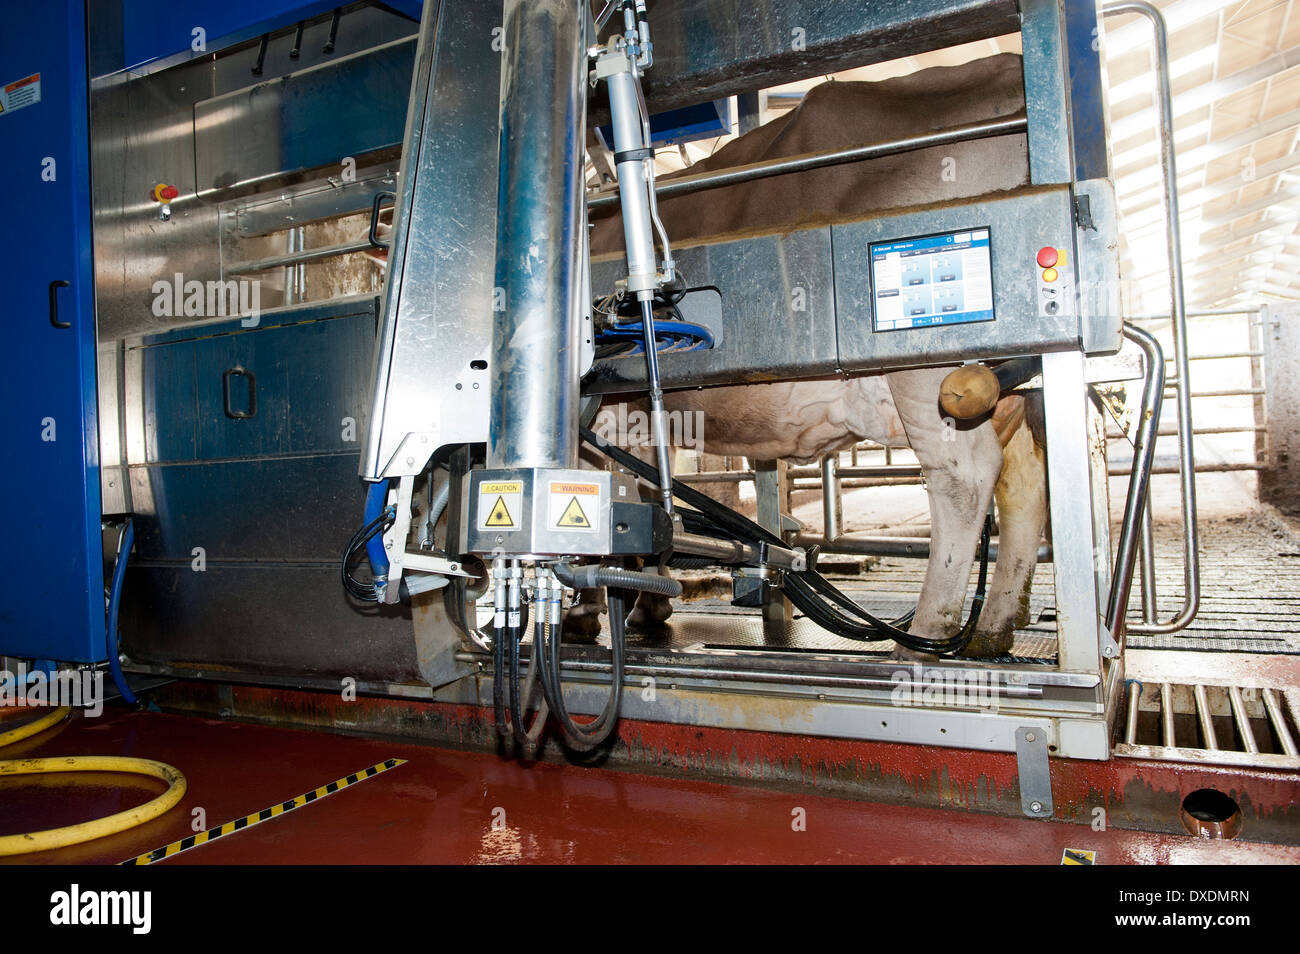 Cattle getting milked by DeLavel robotic milking machine. Scotland. - Stock Image